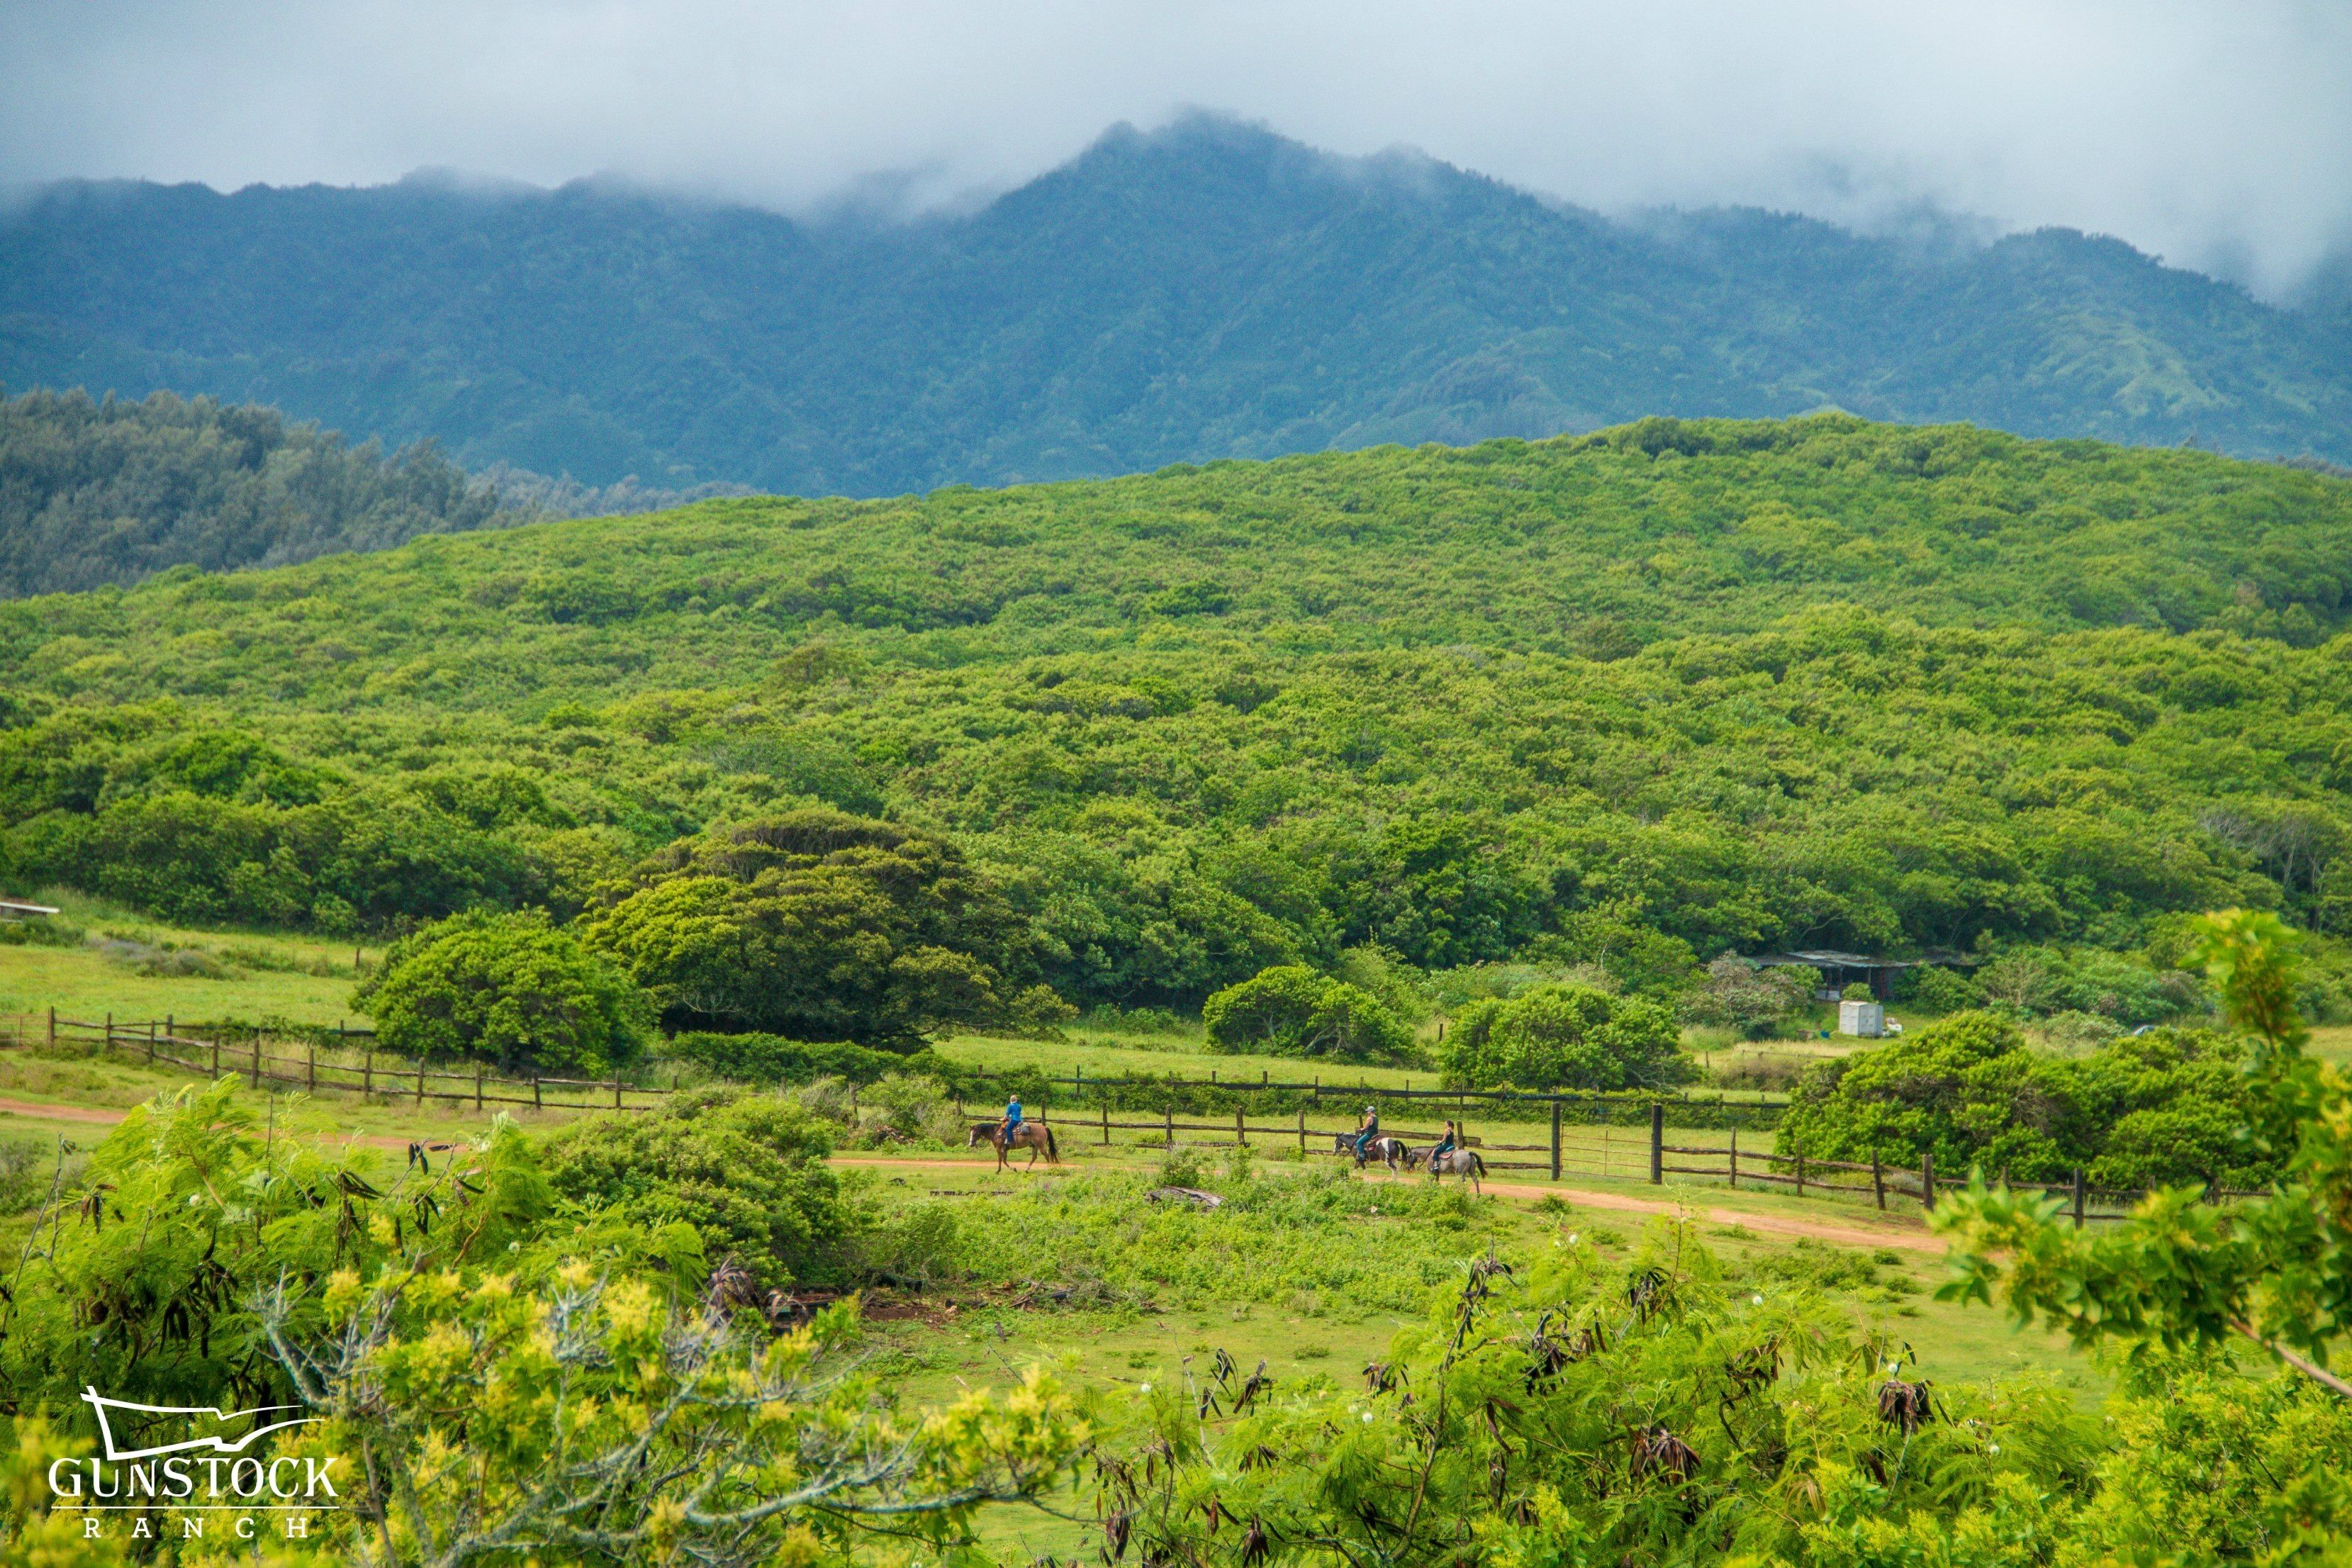 People riding horses with mountains in the distance in Hawaii